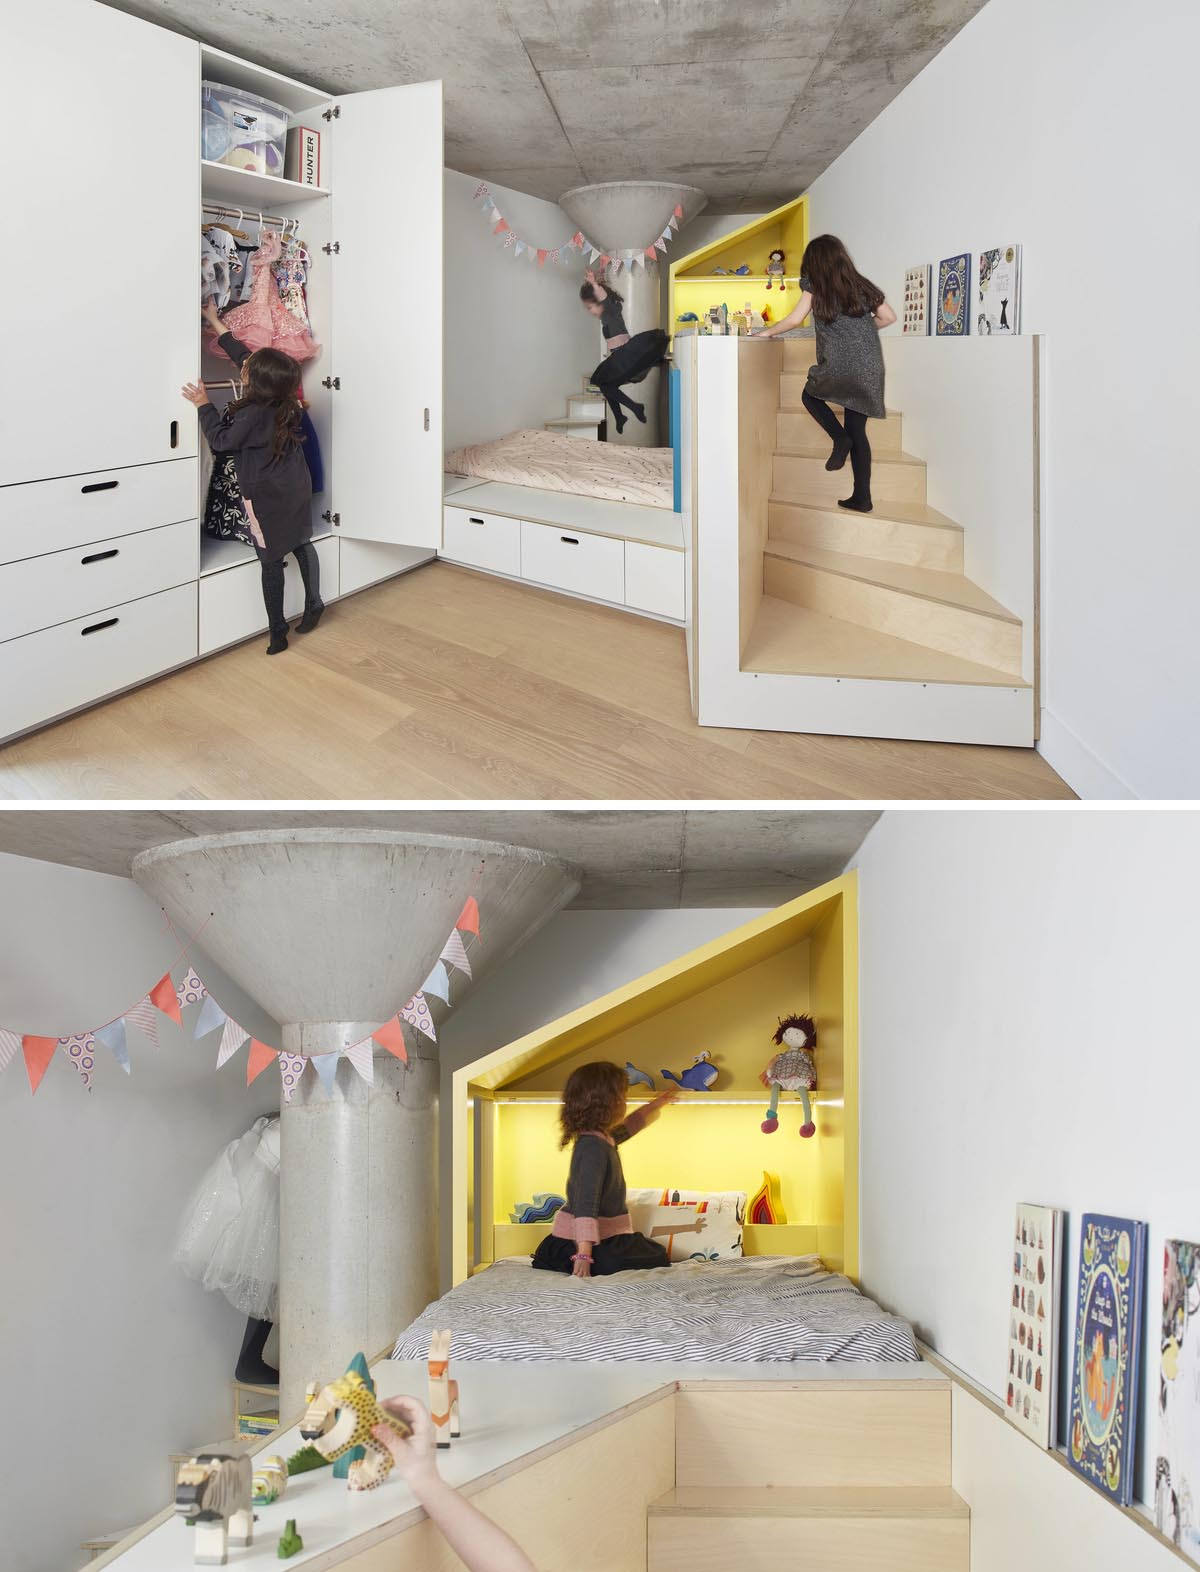 A custom designed bedroom with storage and two small staircases that connect the beds with play areas.